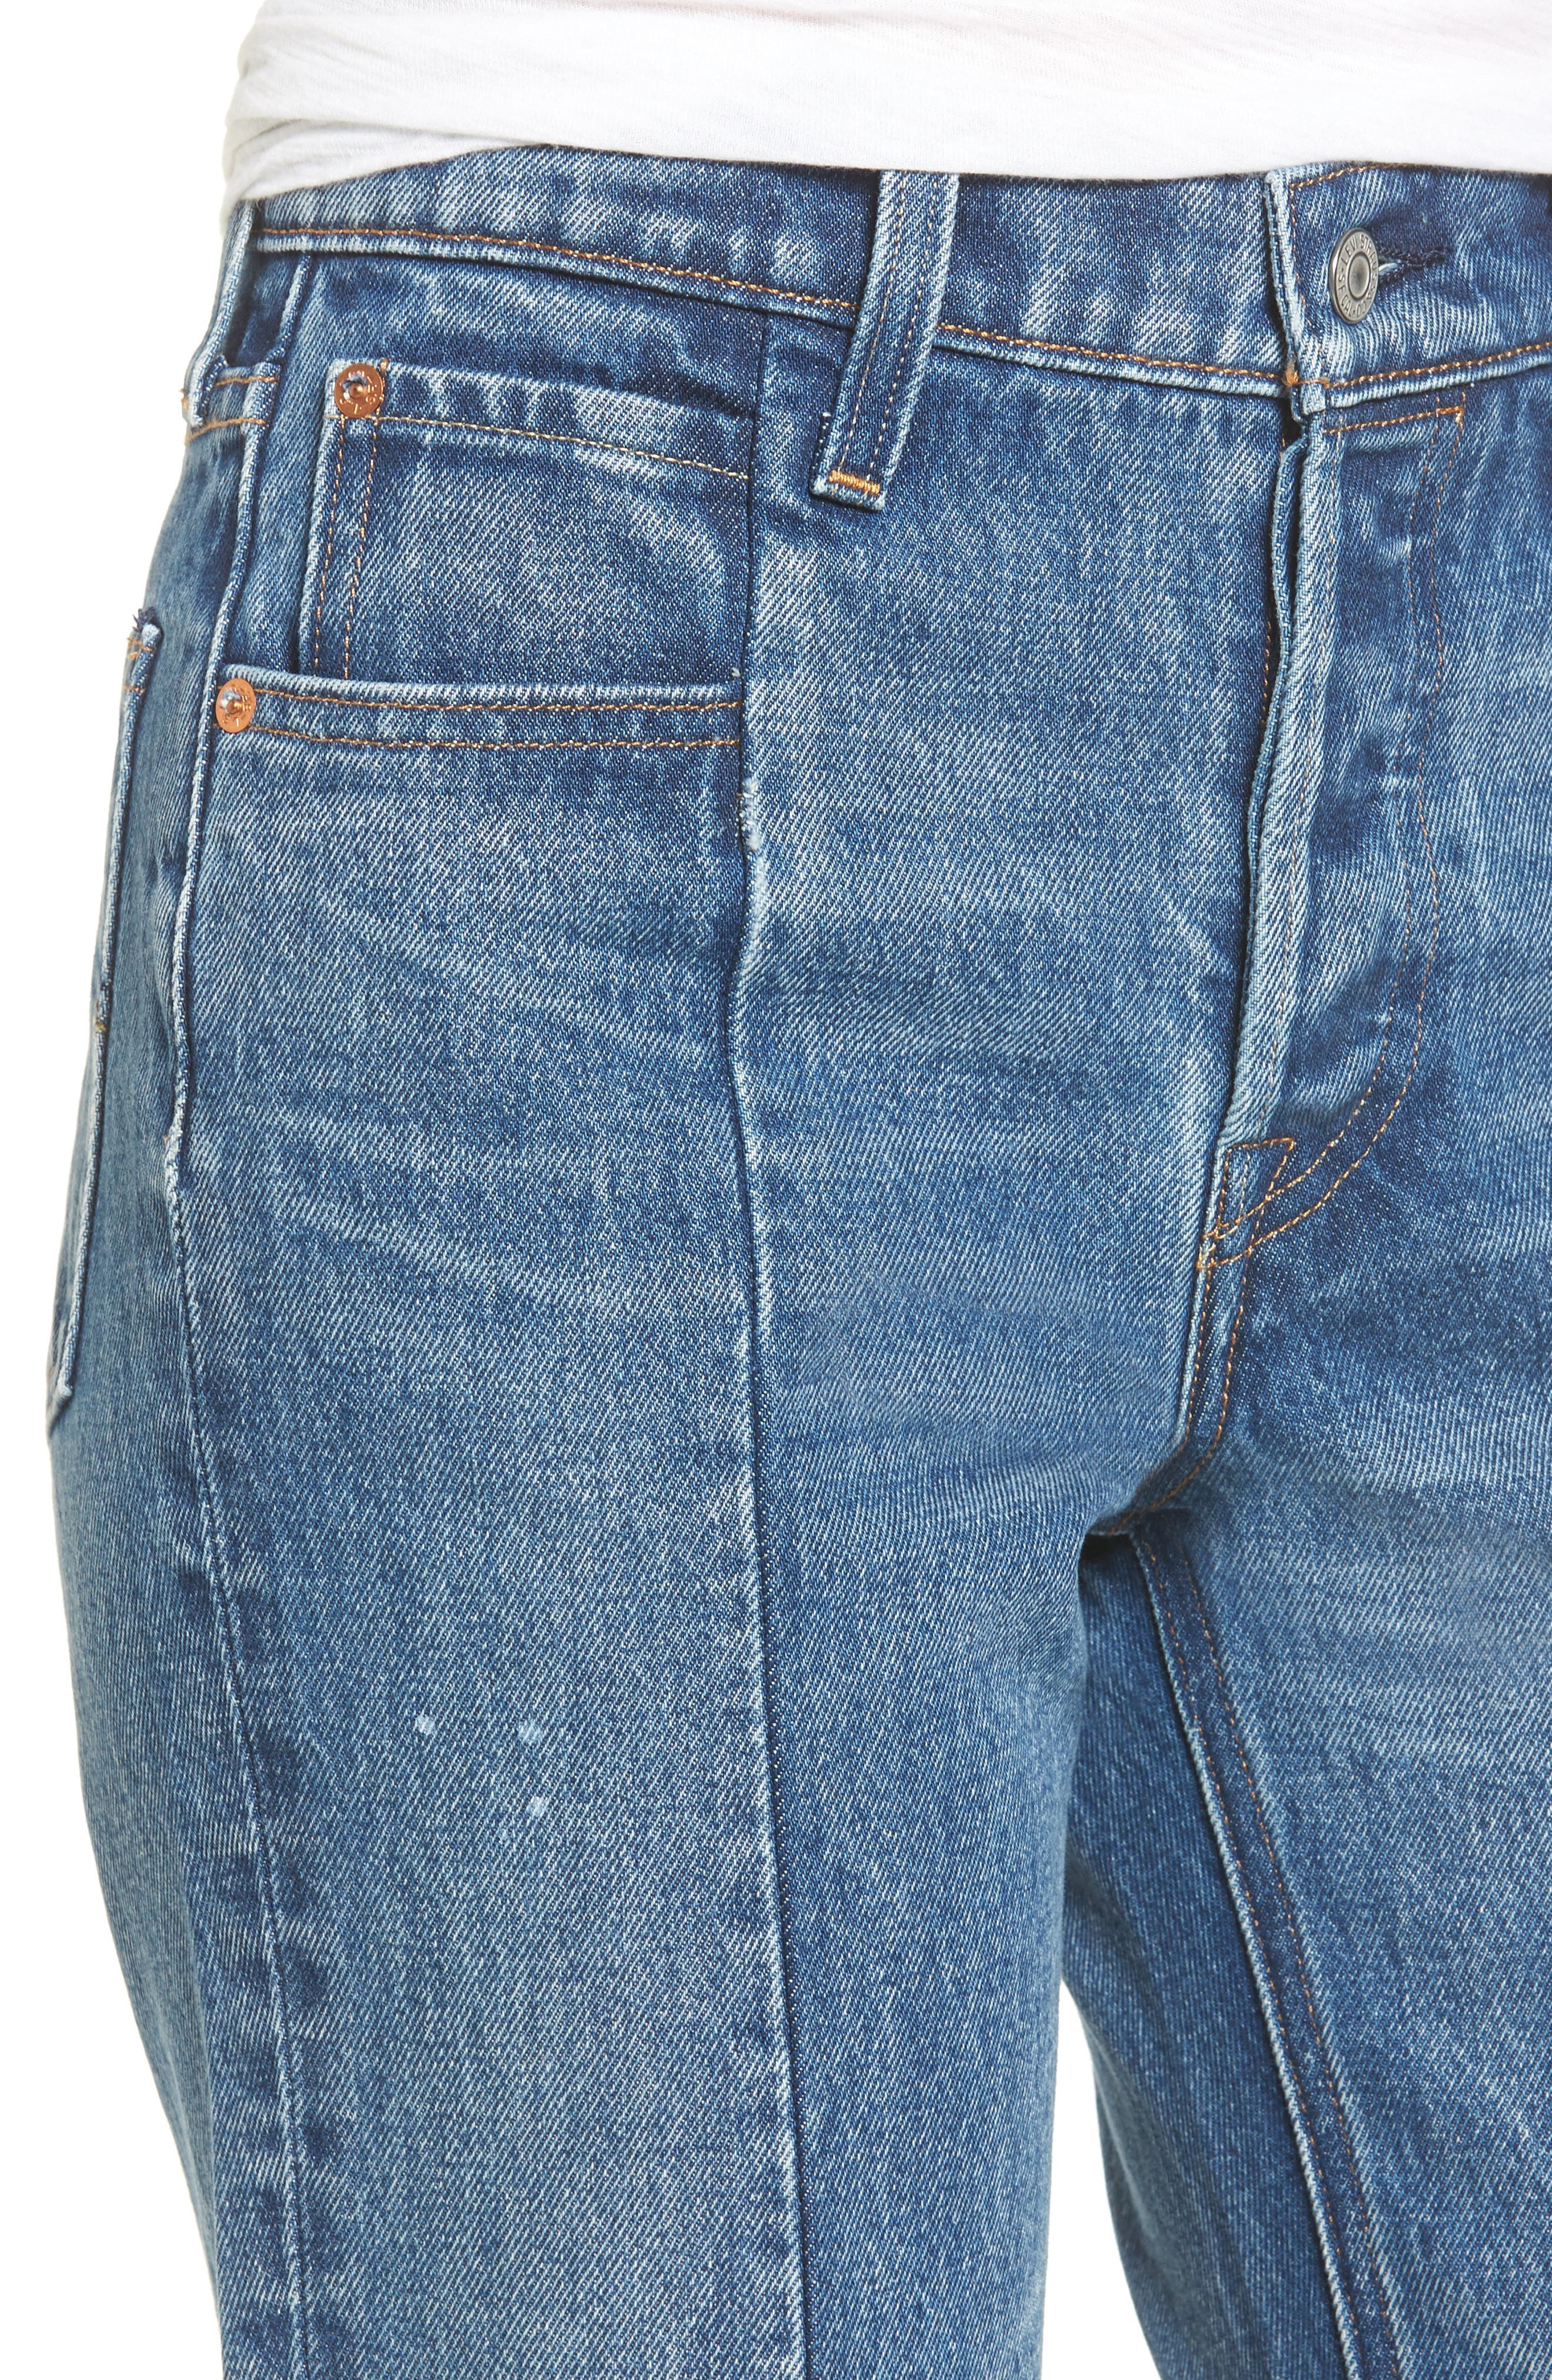 Wedgie Altered Straight Leg Crop Jeans,                             Alternate thumbnail 4, color,                             No Limits